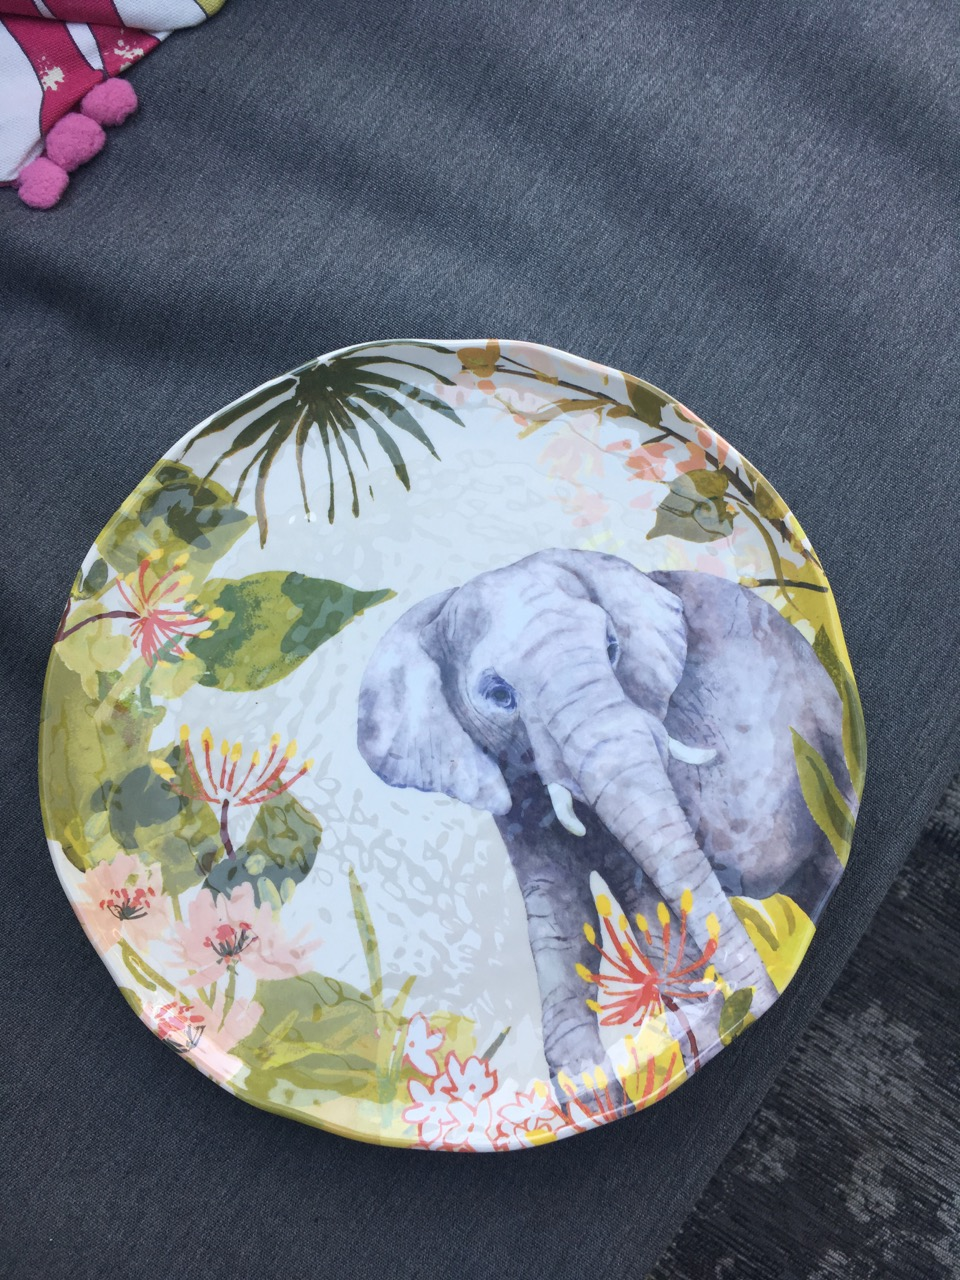 An elephant on my picnic plate